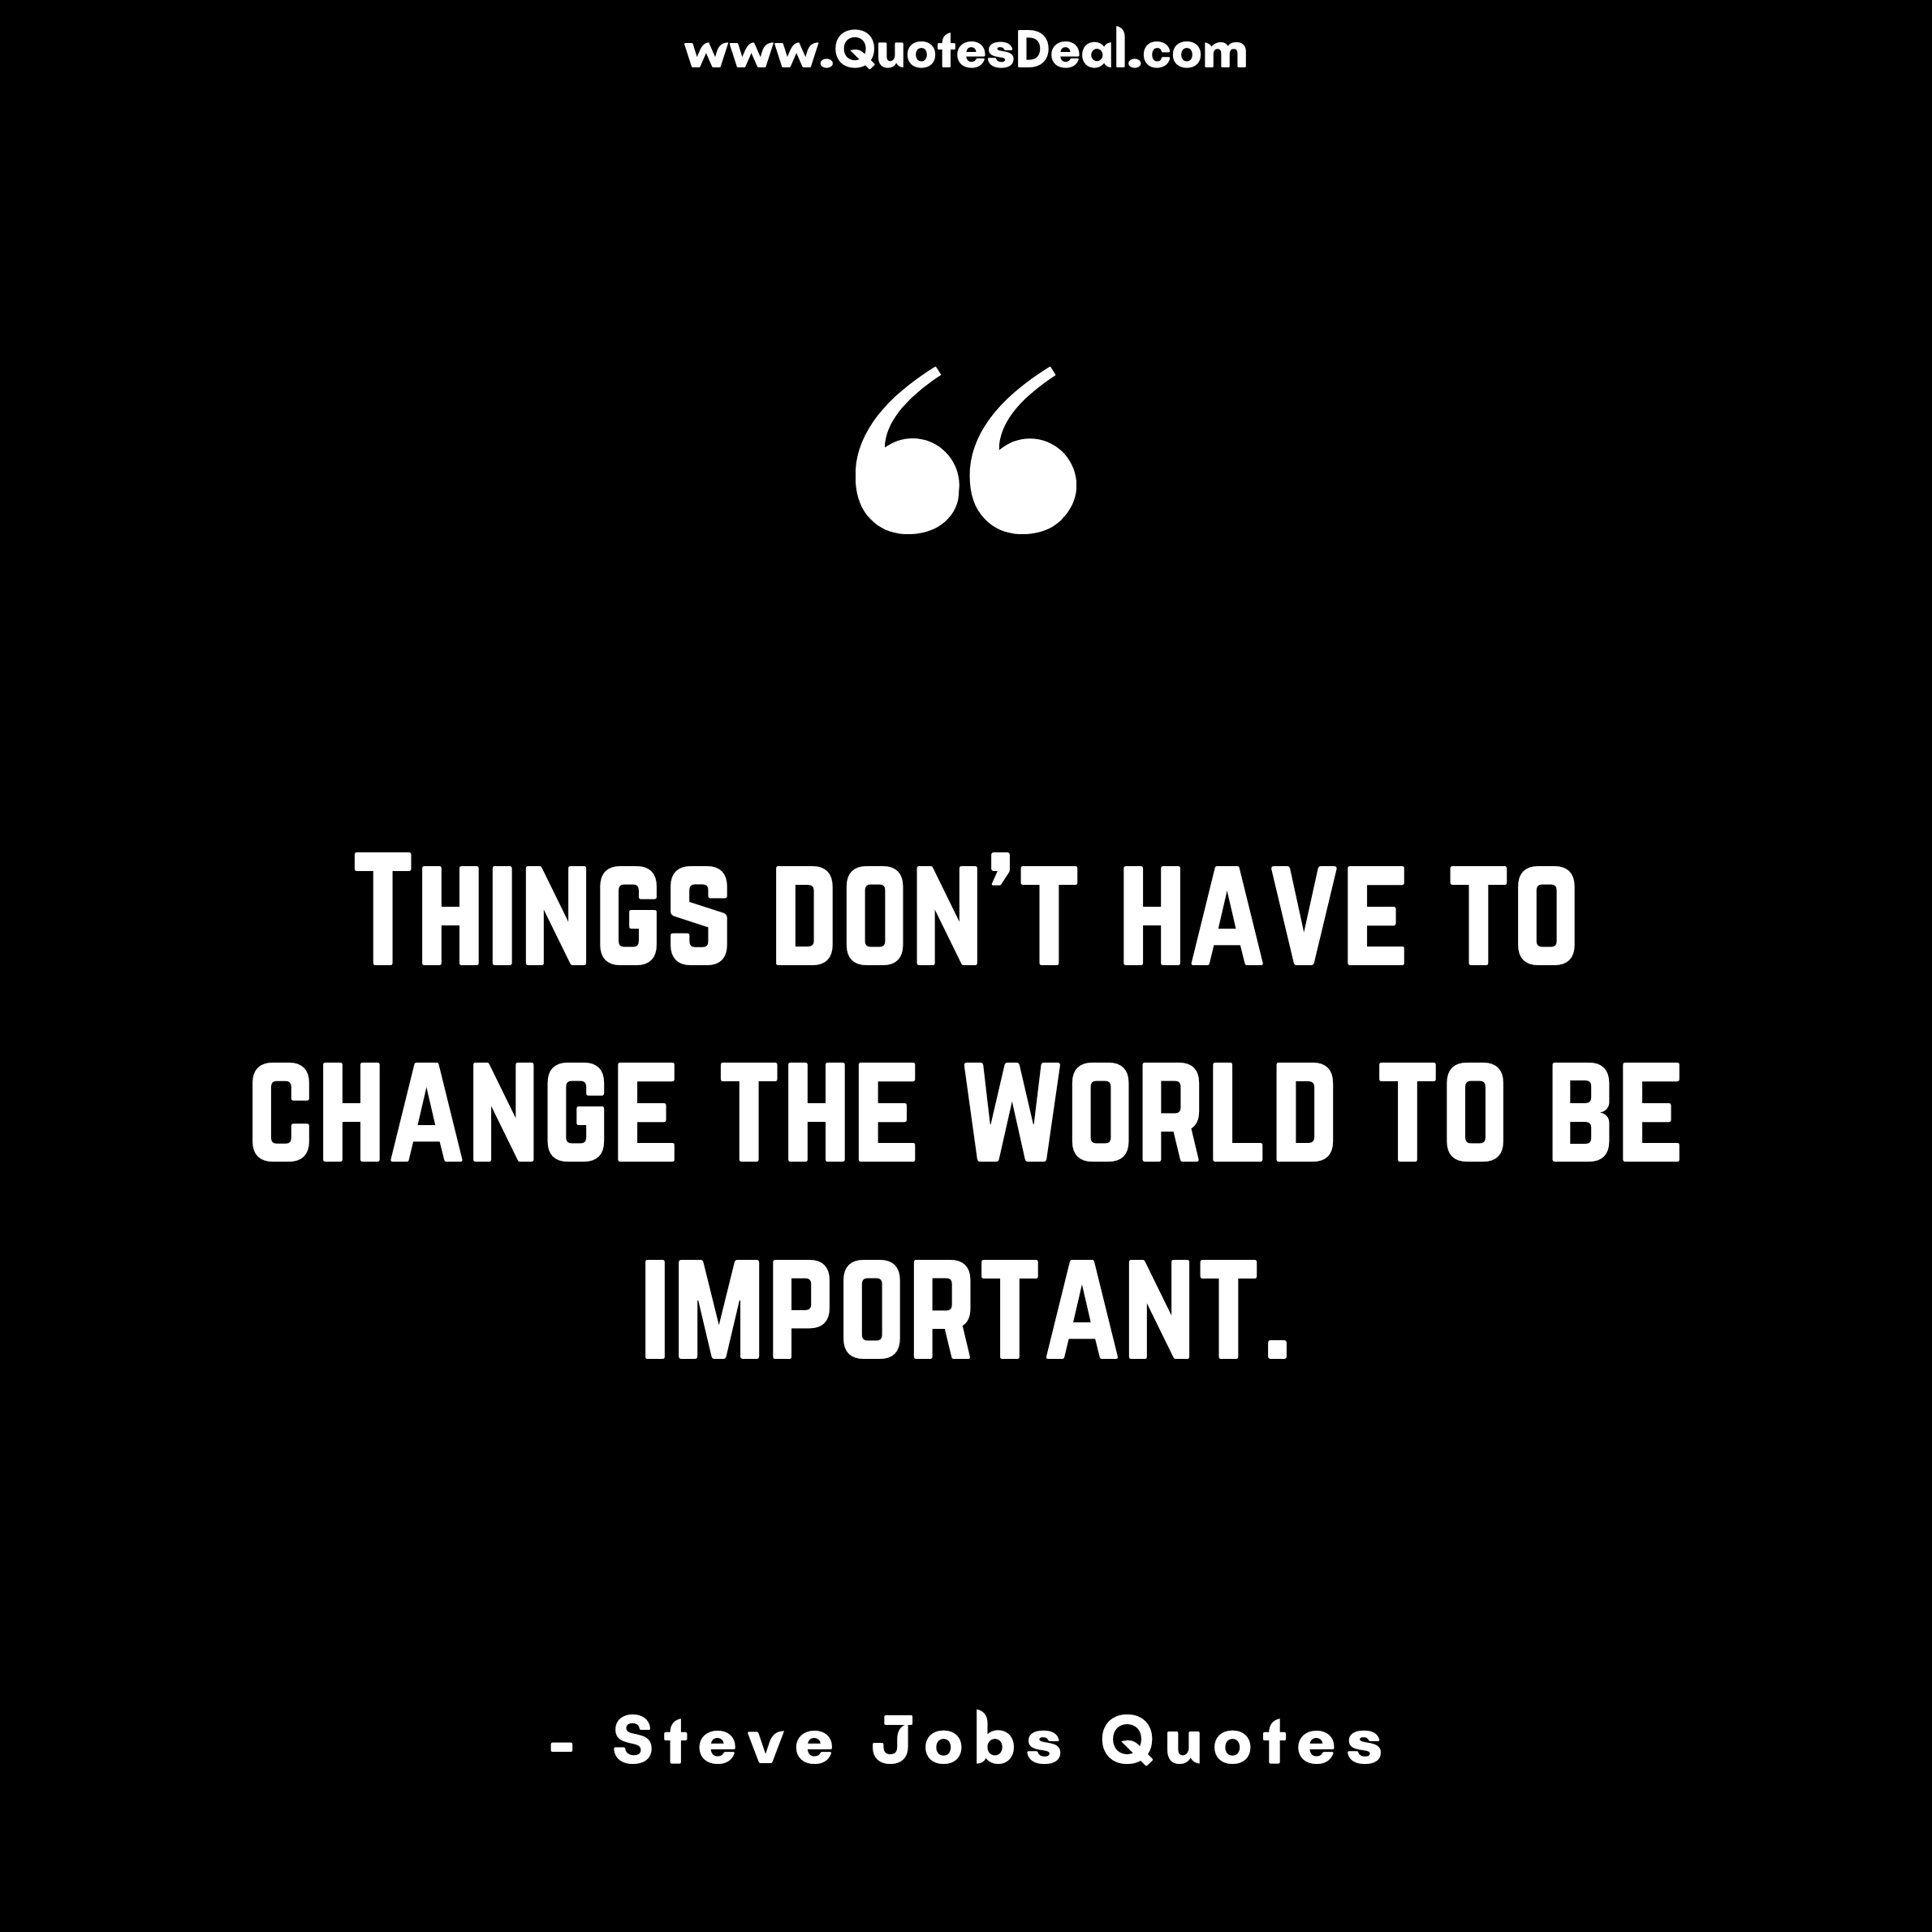 the world to be important